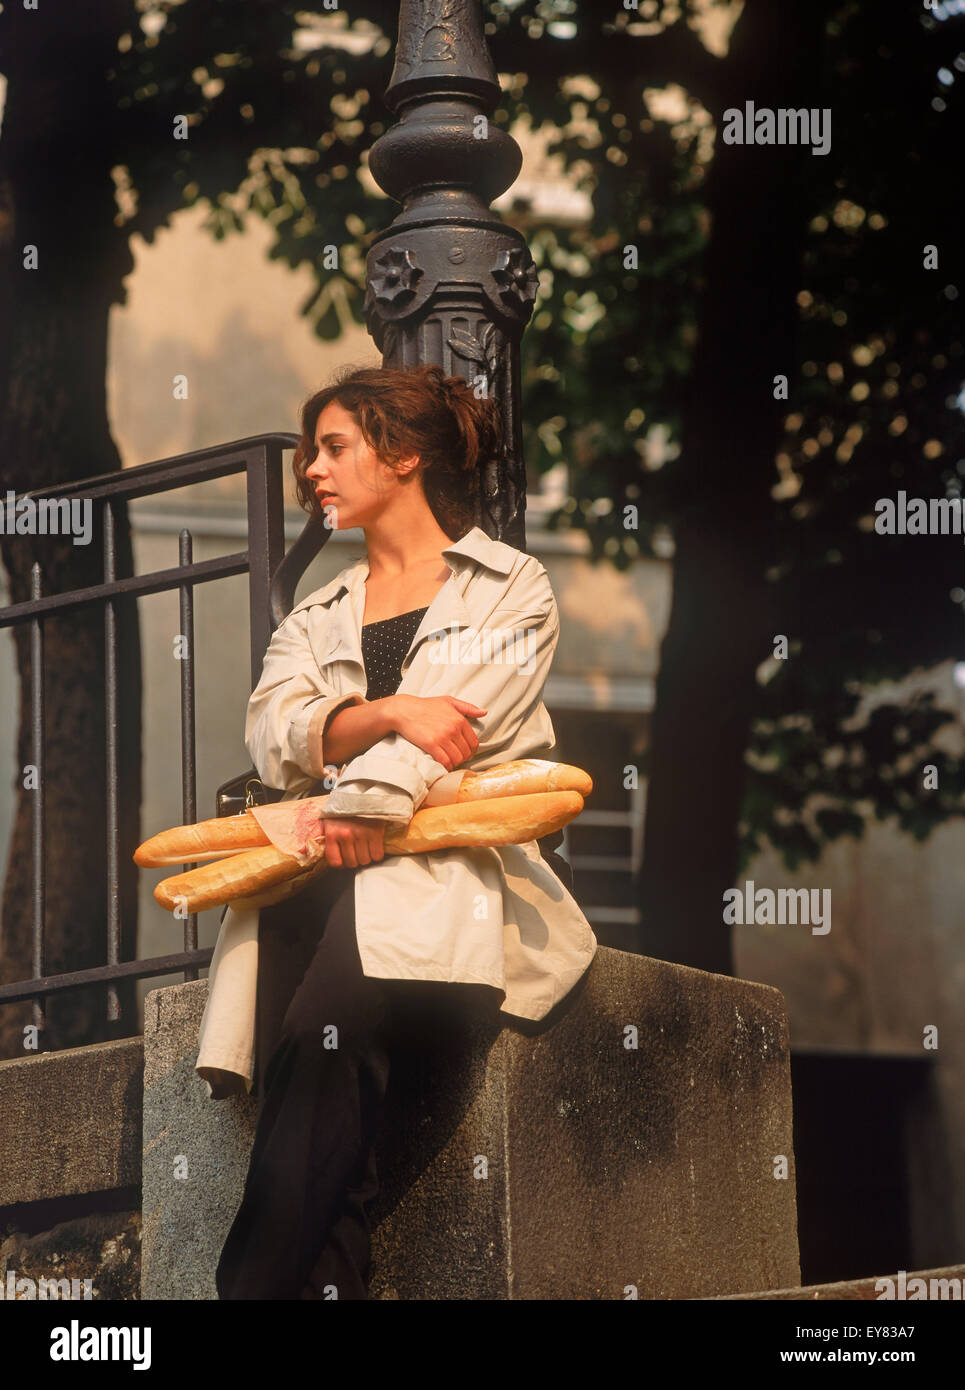 Parisian woman with baguettes resting against street lamp post in quiet Montmartre square - Stock Image